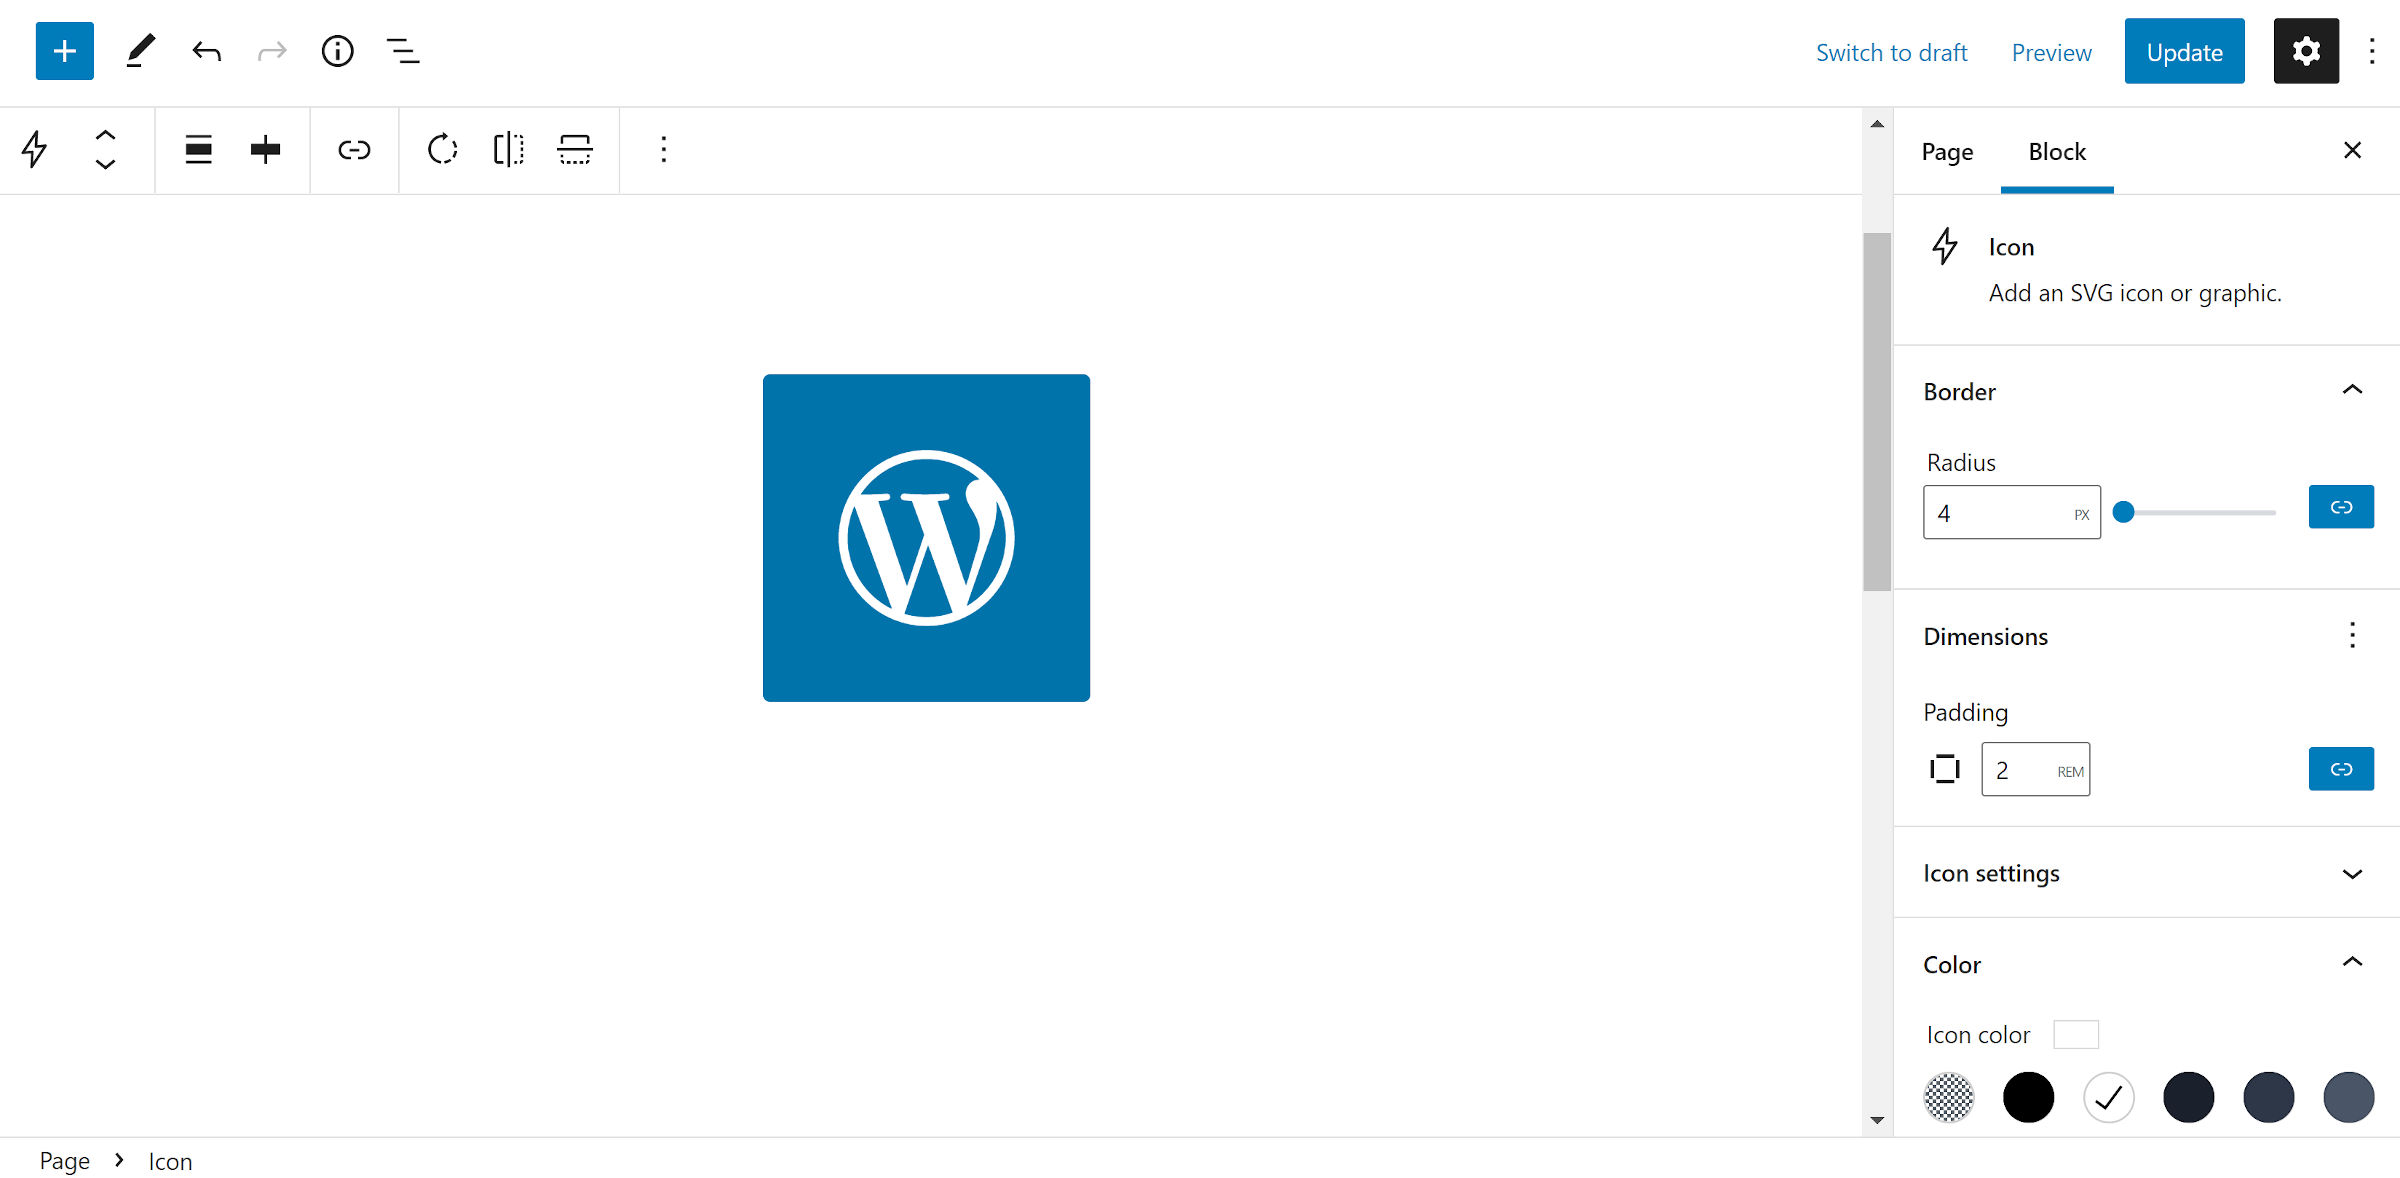 The WordPress logo as an icon with a blue background and white icon.